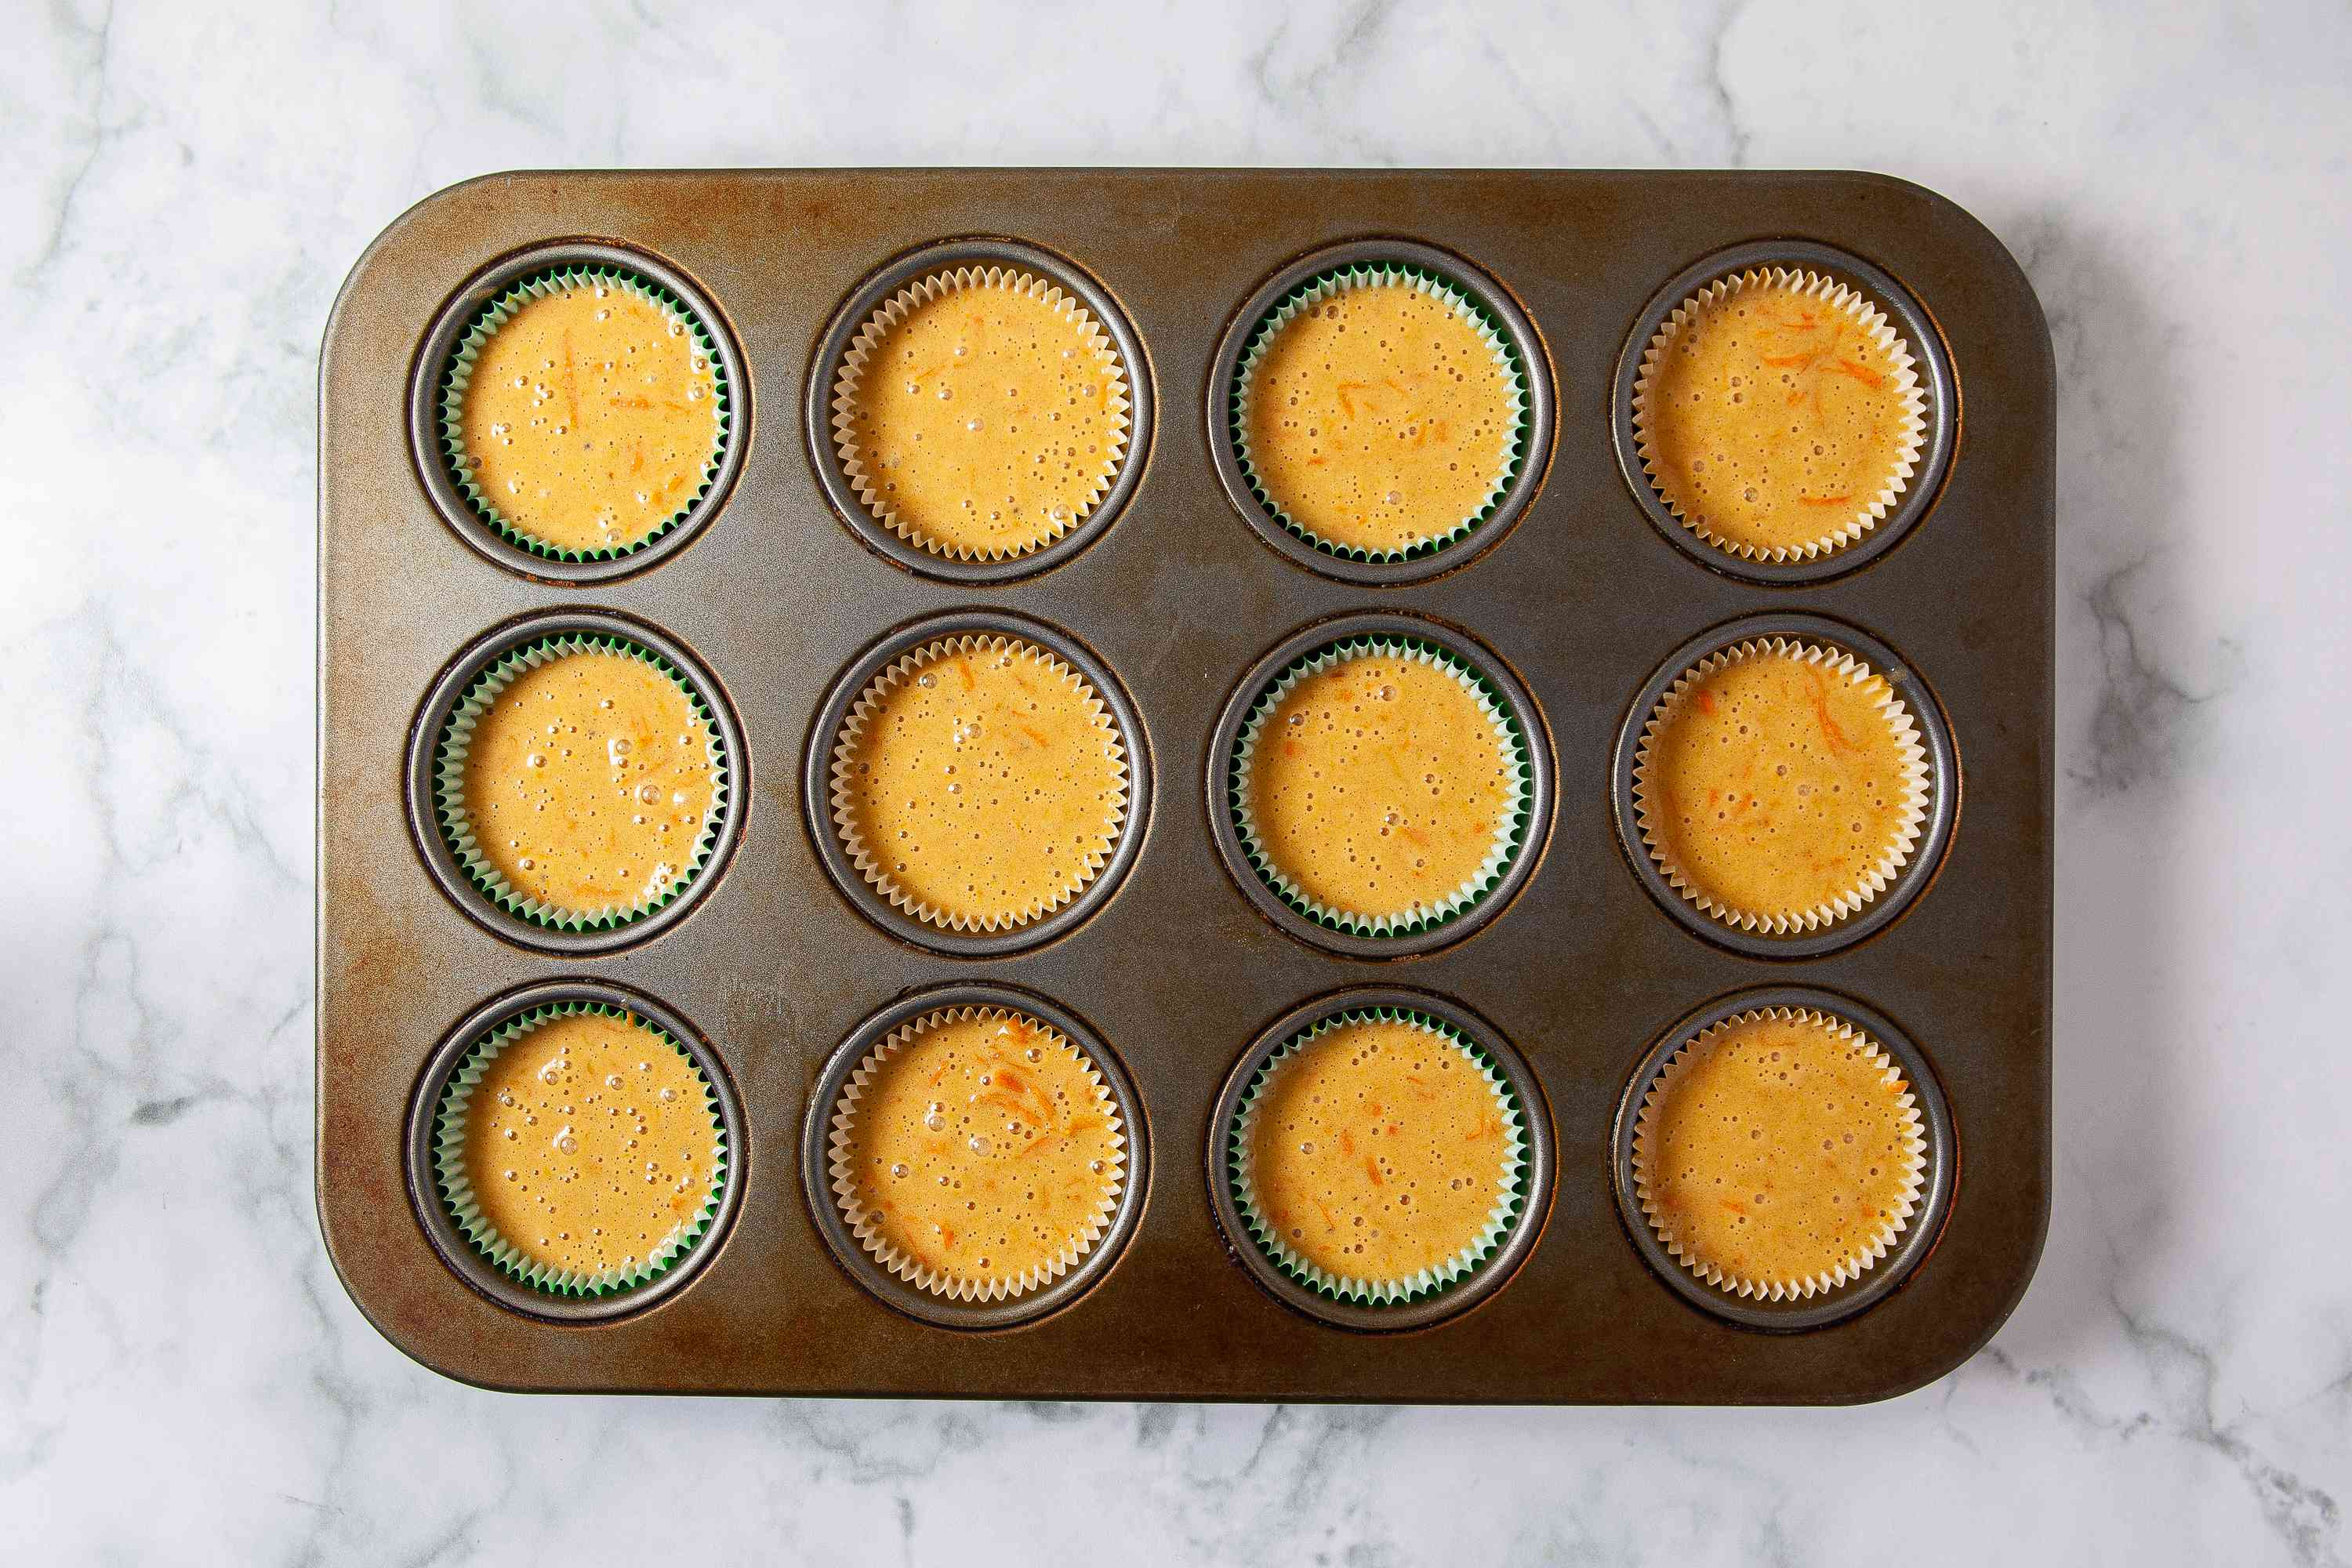 Carrot Cake Cupcakes ready for baking